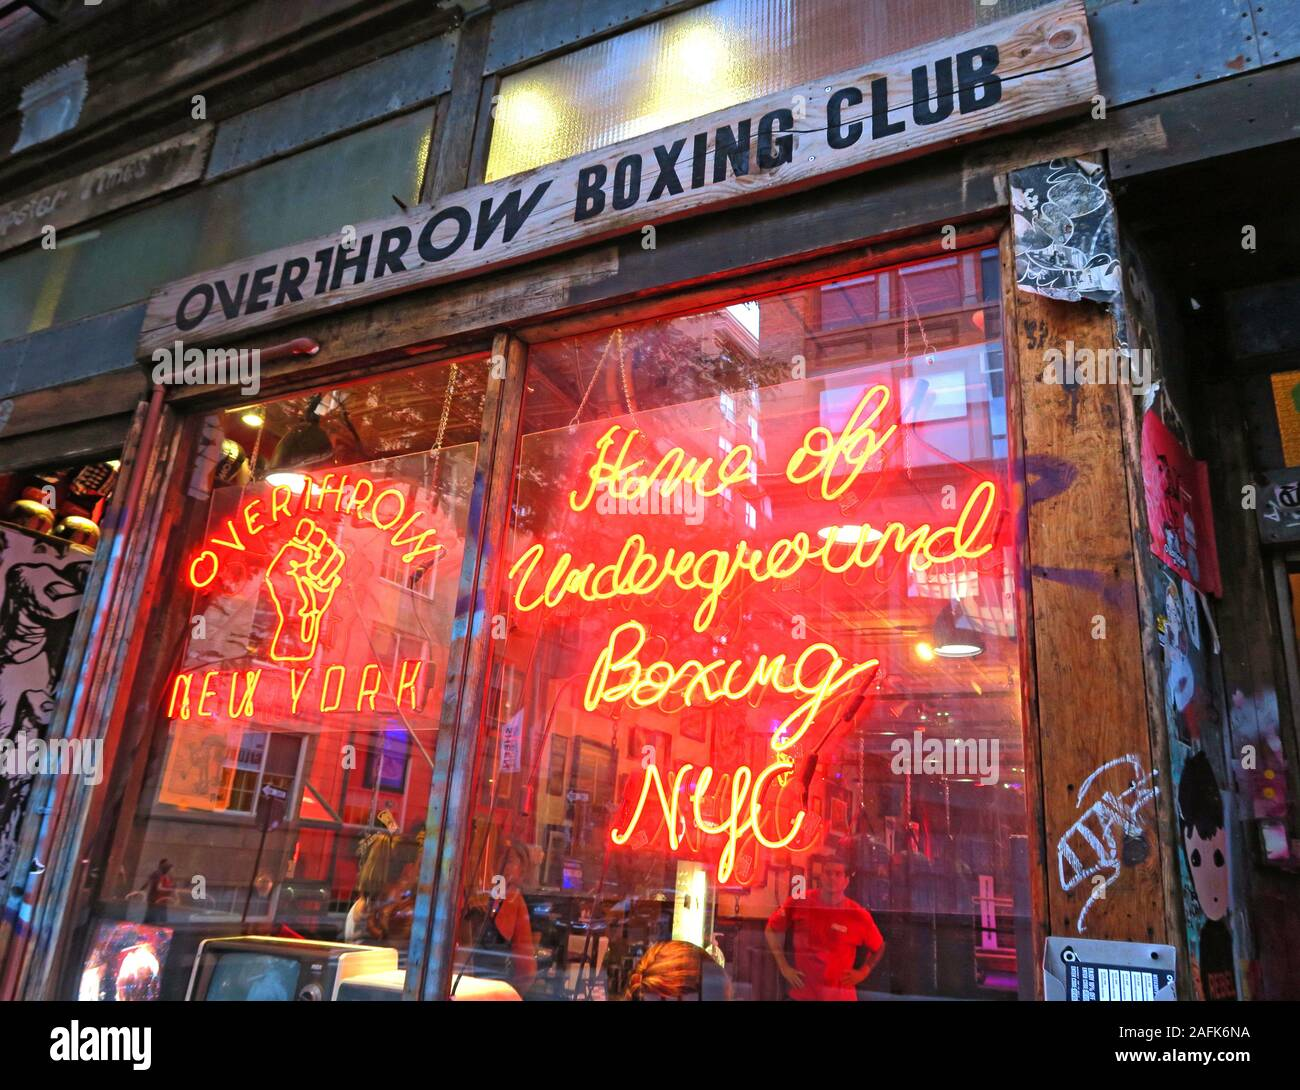 HotpixUK,@HotpixUk,GoTonySmith,NYC,NY,New York,Manhattan,USA,city,city centre,US,boxing,neon sign,red,orange,window,culture,exercise,ring work,9 BLEECKER STREET,NEW YORK,NY 10012,9 Bleecker St,private training,Overthrow Boxing,gritty,downtown,headquarters,eastside,lower manhattan,gym,sport,boxing sport,boxing clubs,local boxing gym,boxing gym,boxing brand